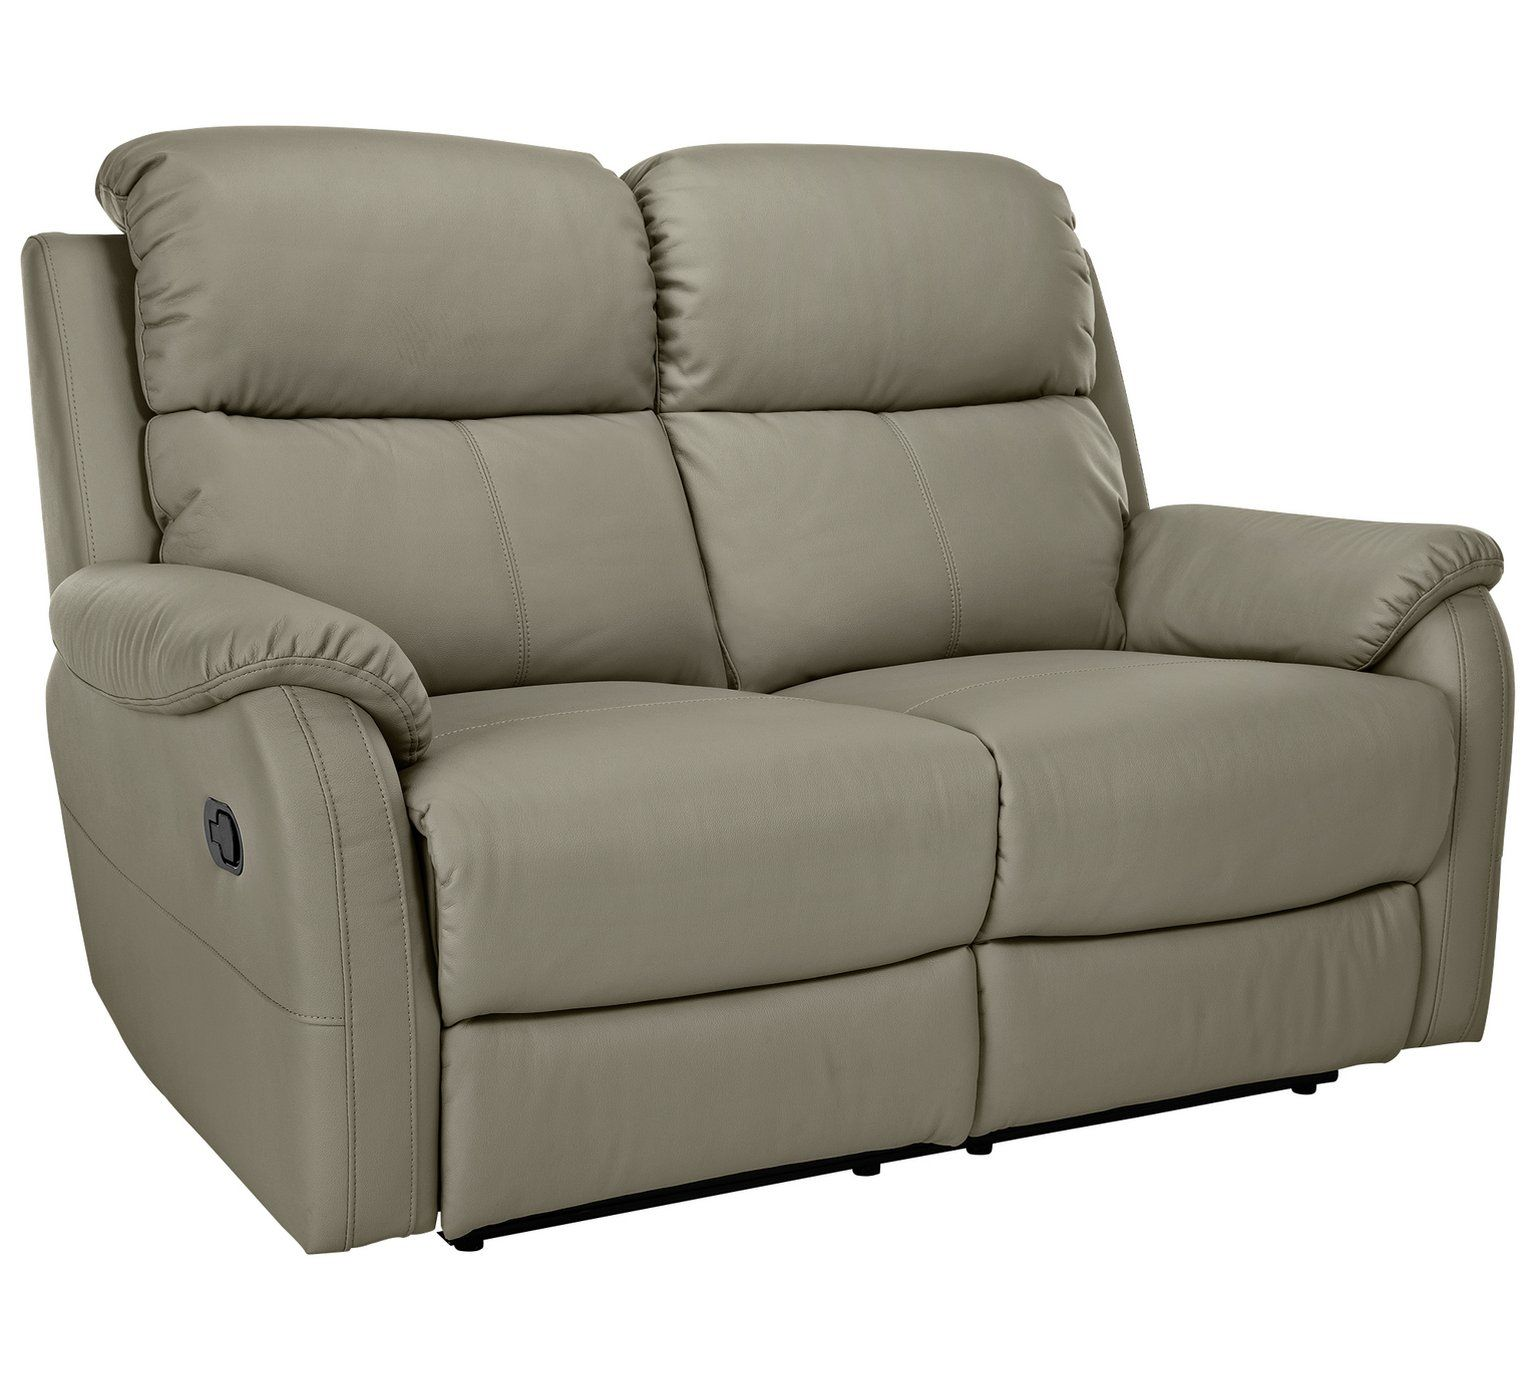 Home Tyler 2 Seater Manual Recliner